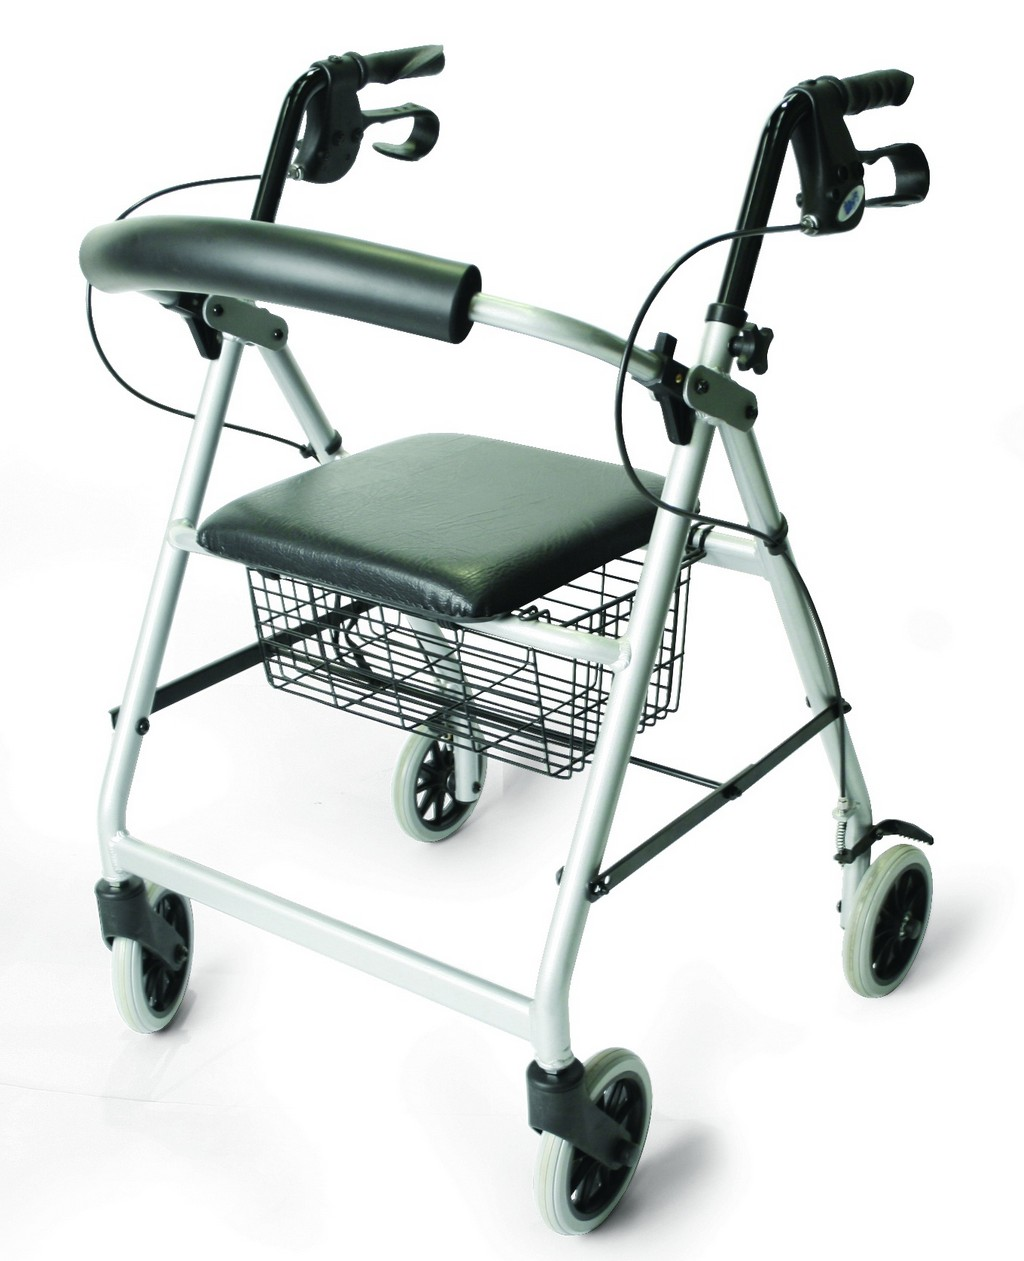 invacare four wheel rollator walker 8 wheels, drive rollator com, medline rollator walkers, northshore care supply rollators